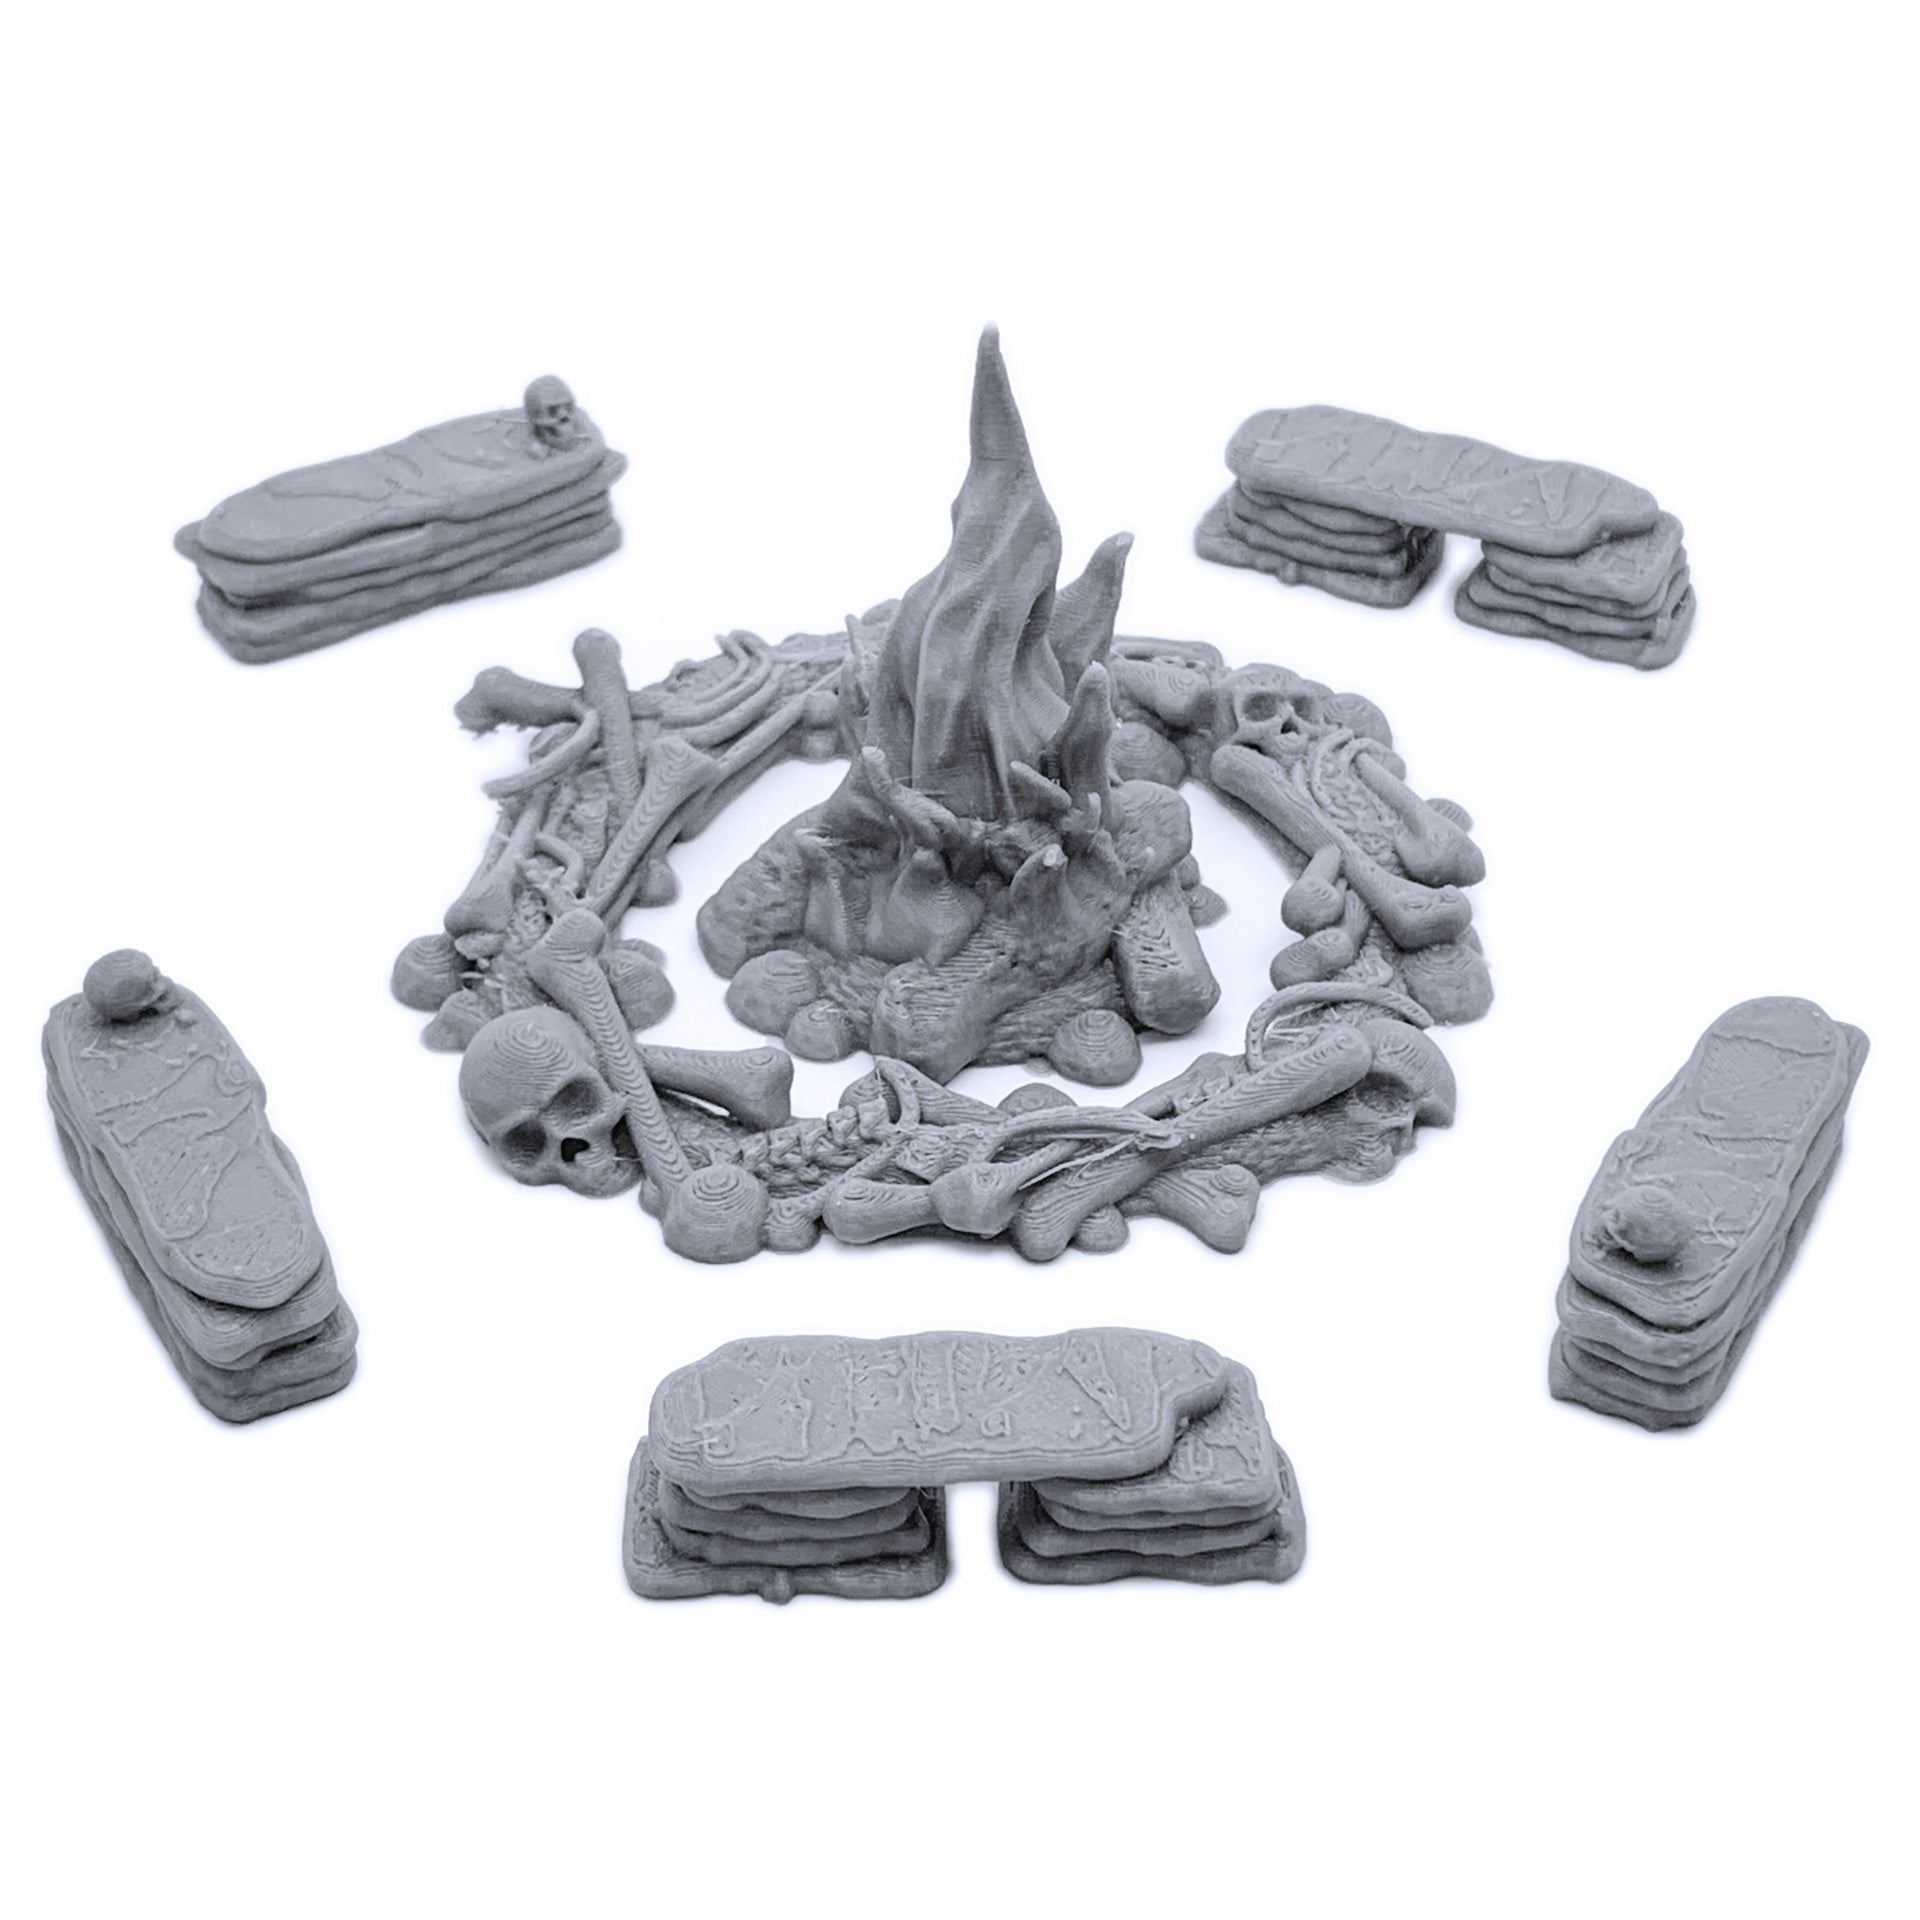 Hill Giant Bone Fire Pit - EnderToys Terrain